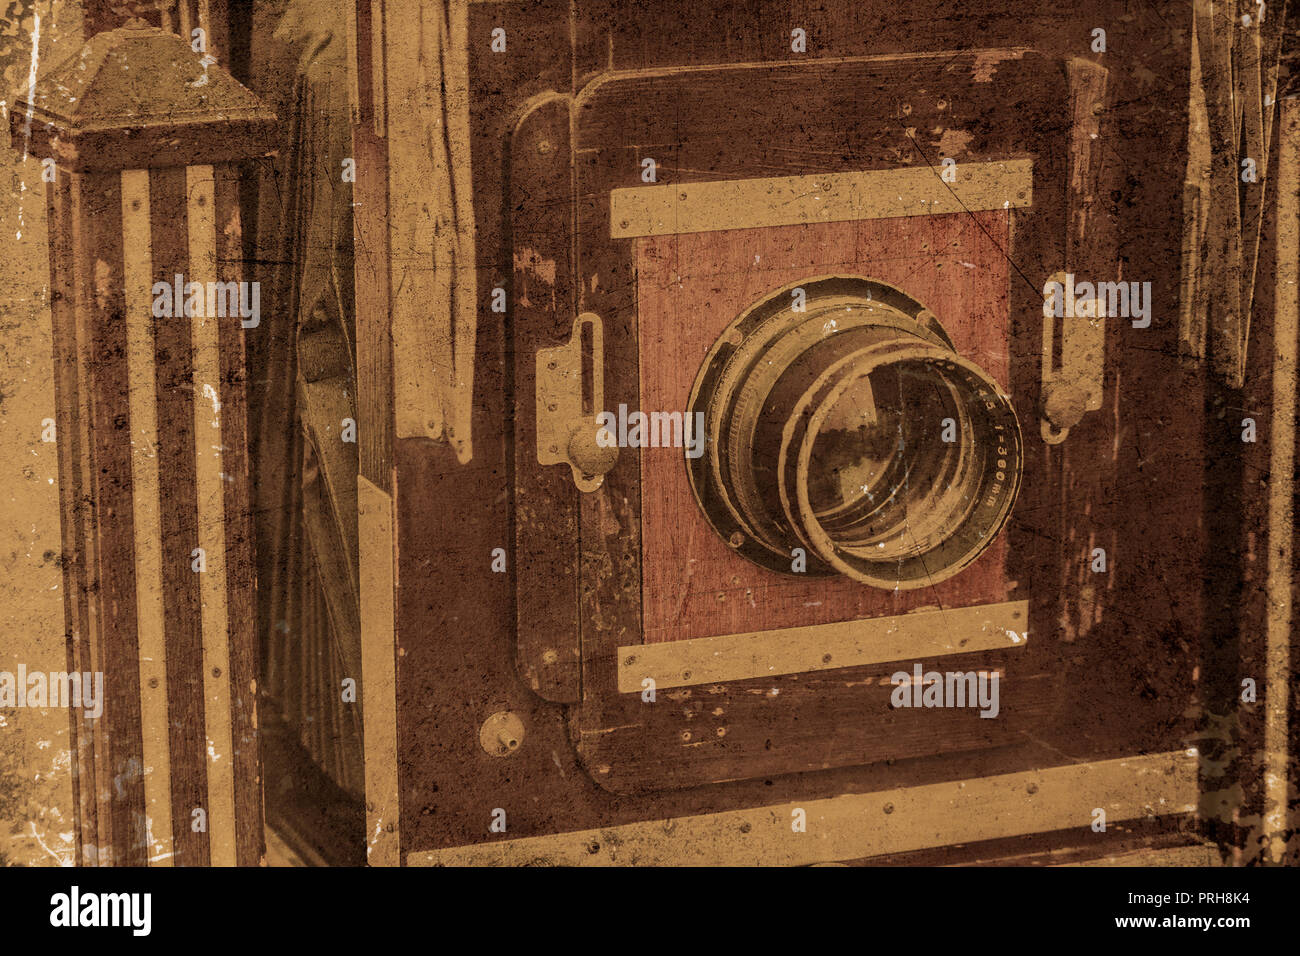 vintage old camera large format closeup front lens with grunge dirty texture. - Stock Image